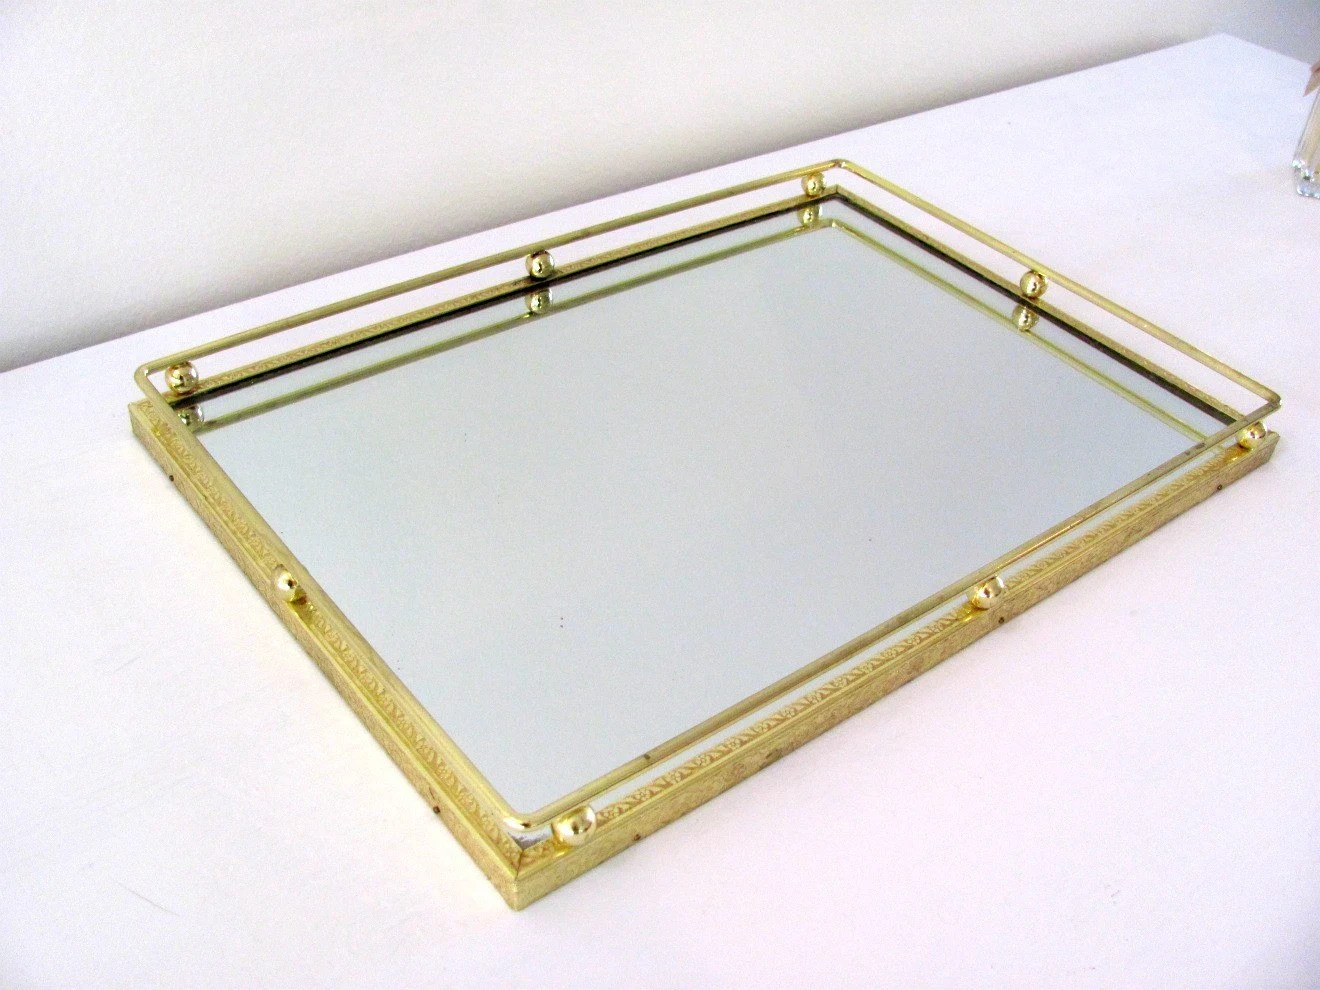 Vintage Mirrored Tray Vanity Tray With Gold Floral Frame